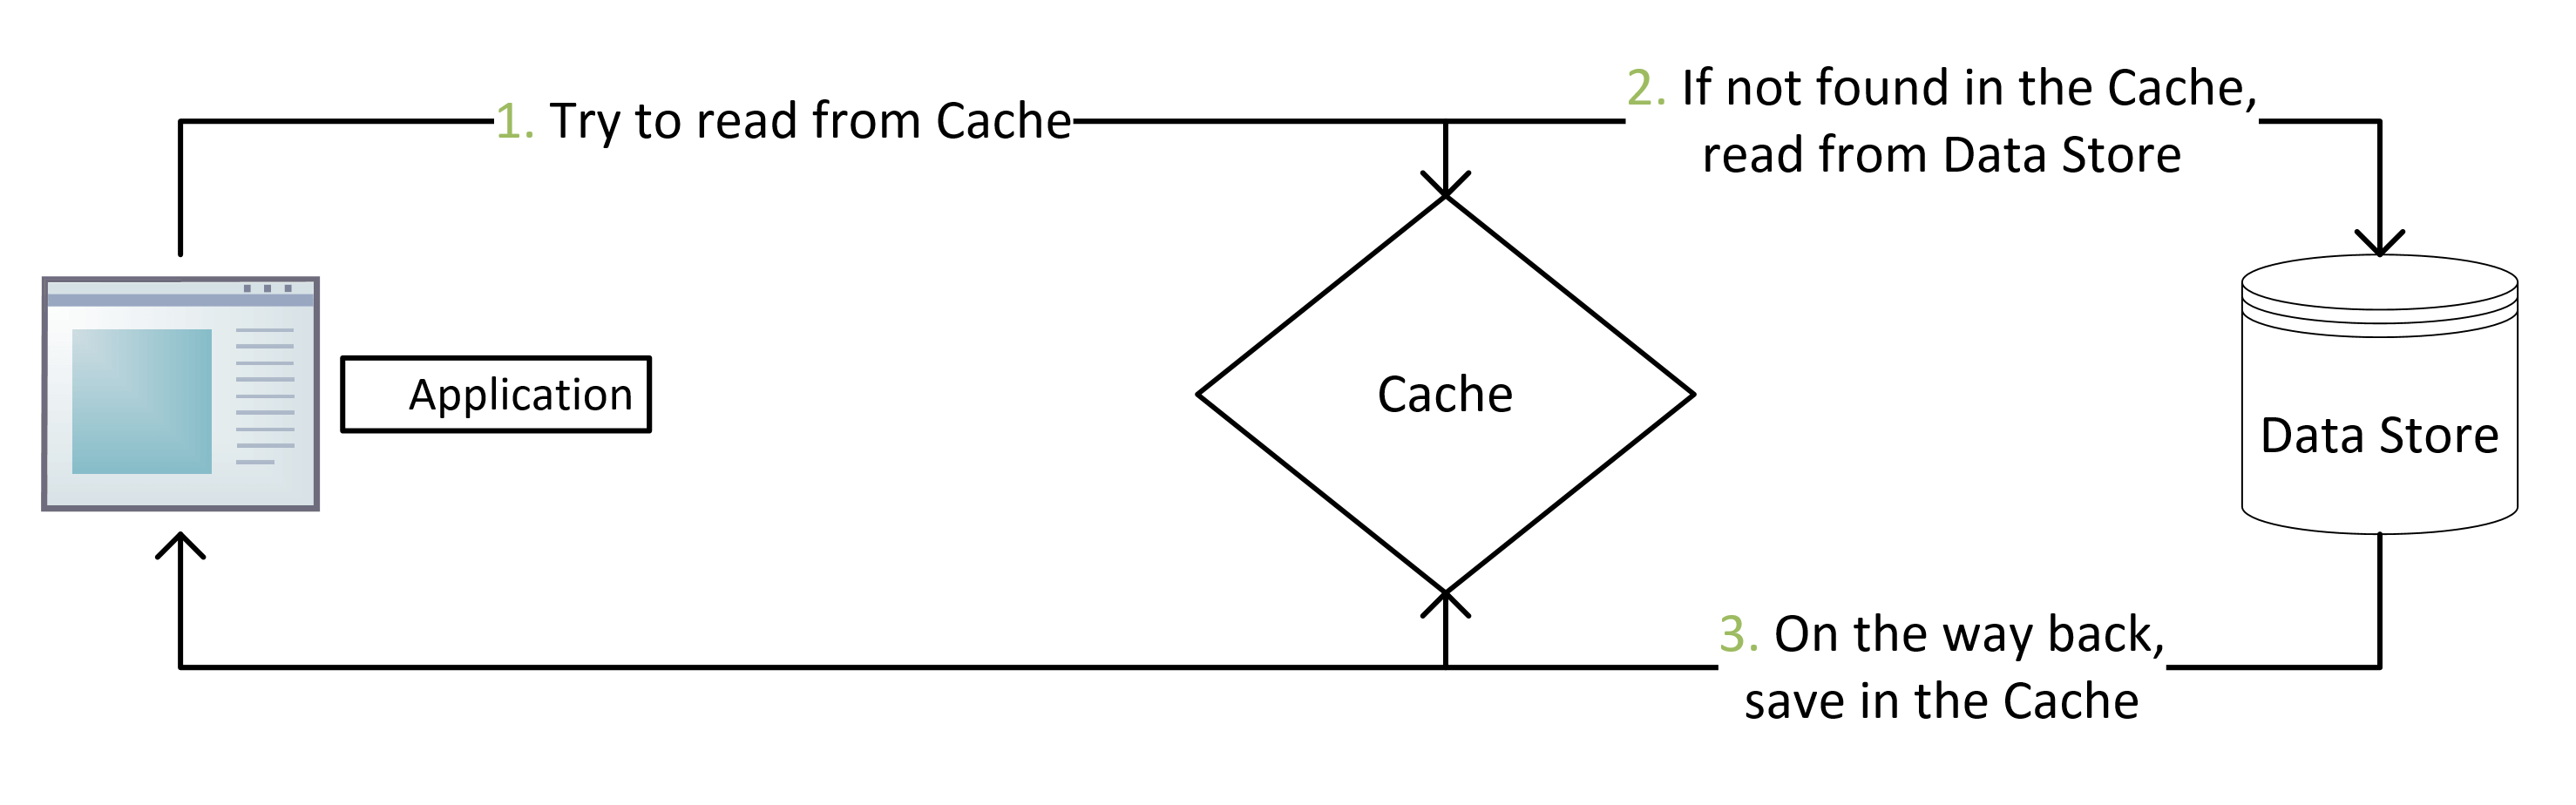 Reading Data using the Cache-Aside Pattern - Flow Diagram